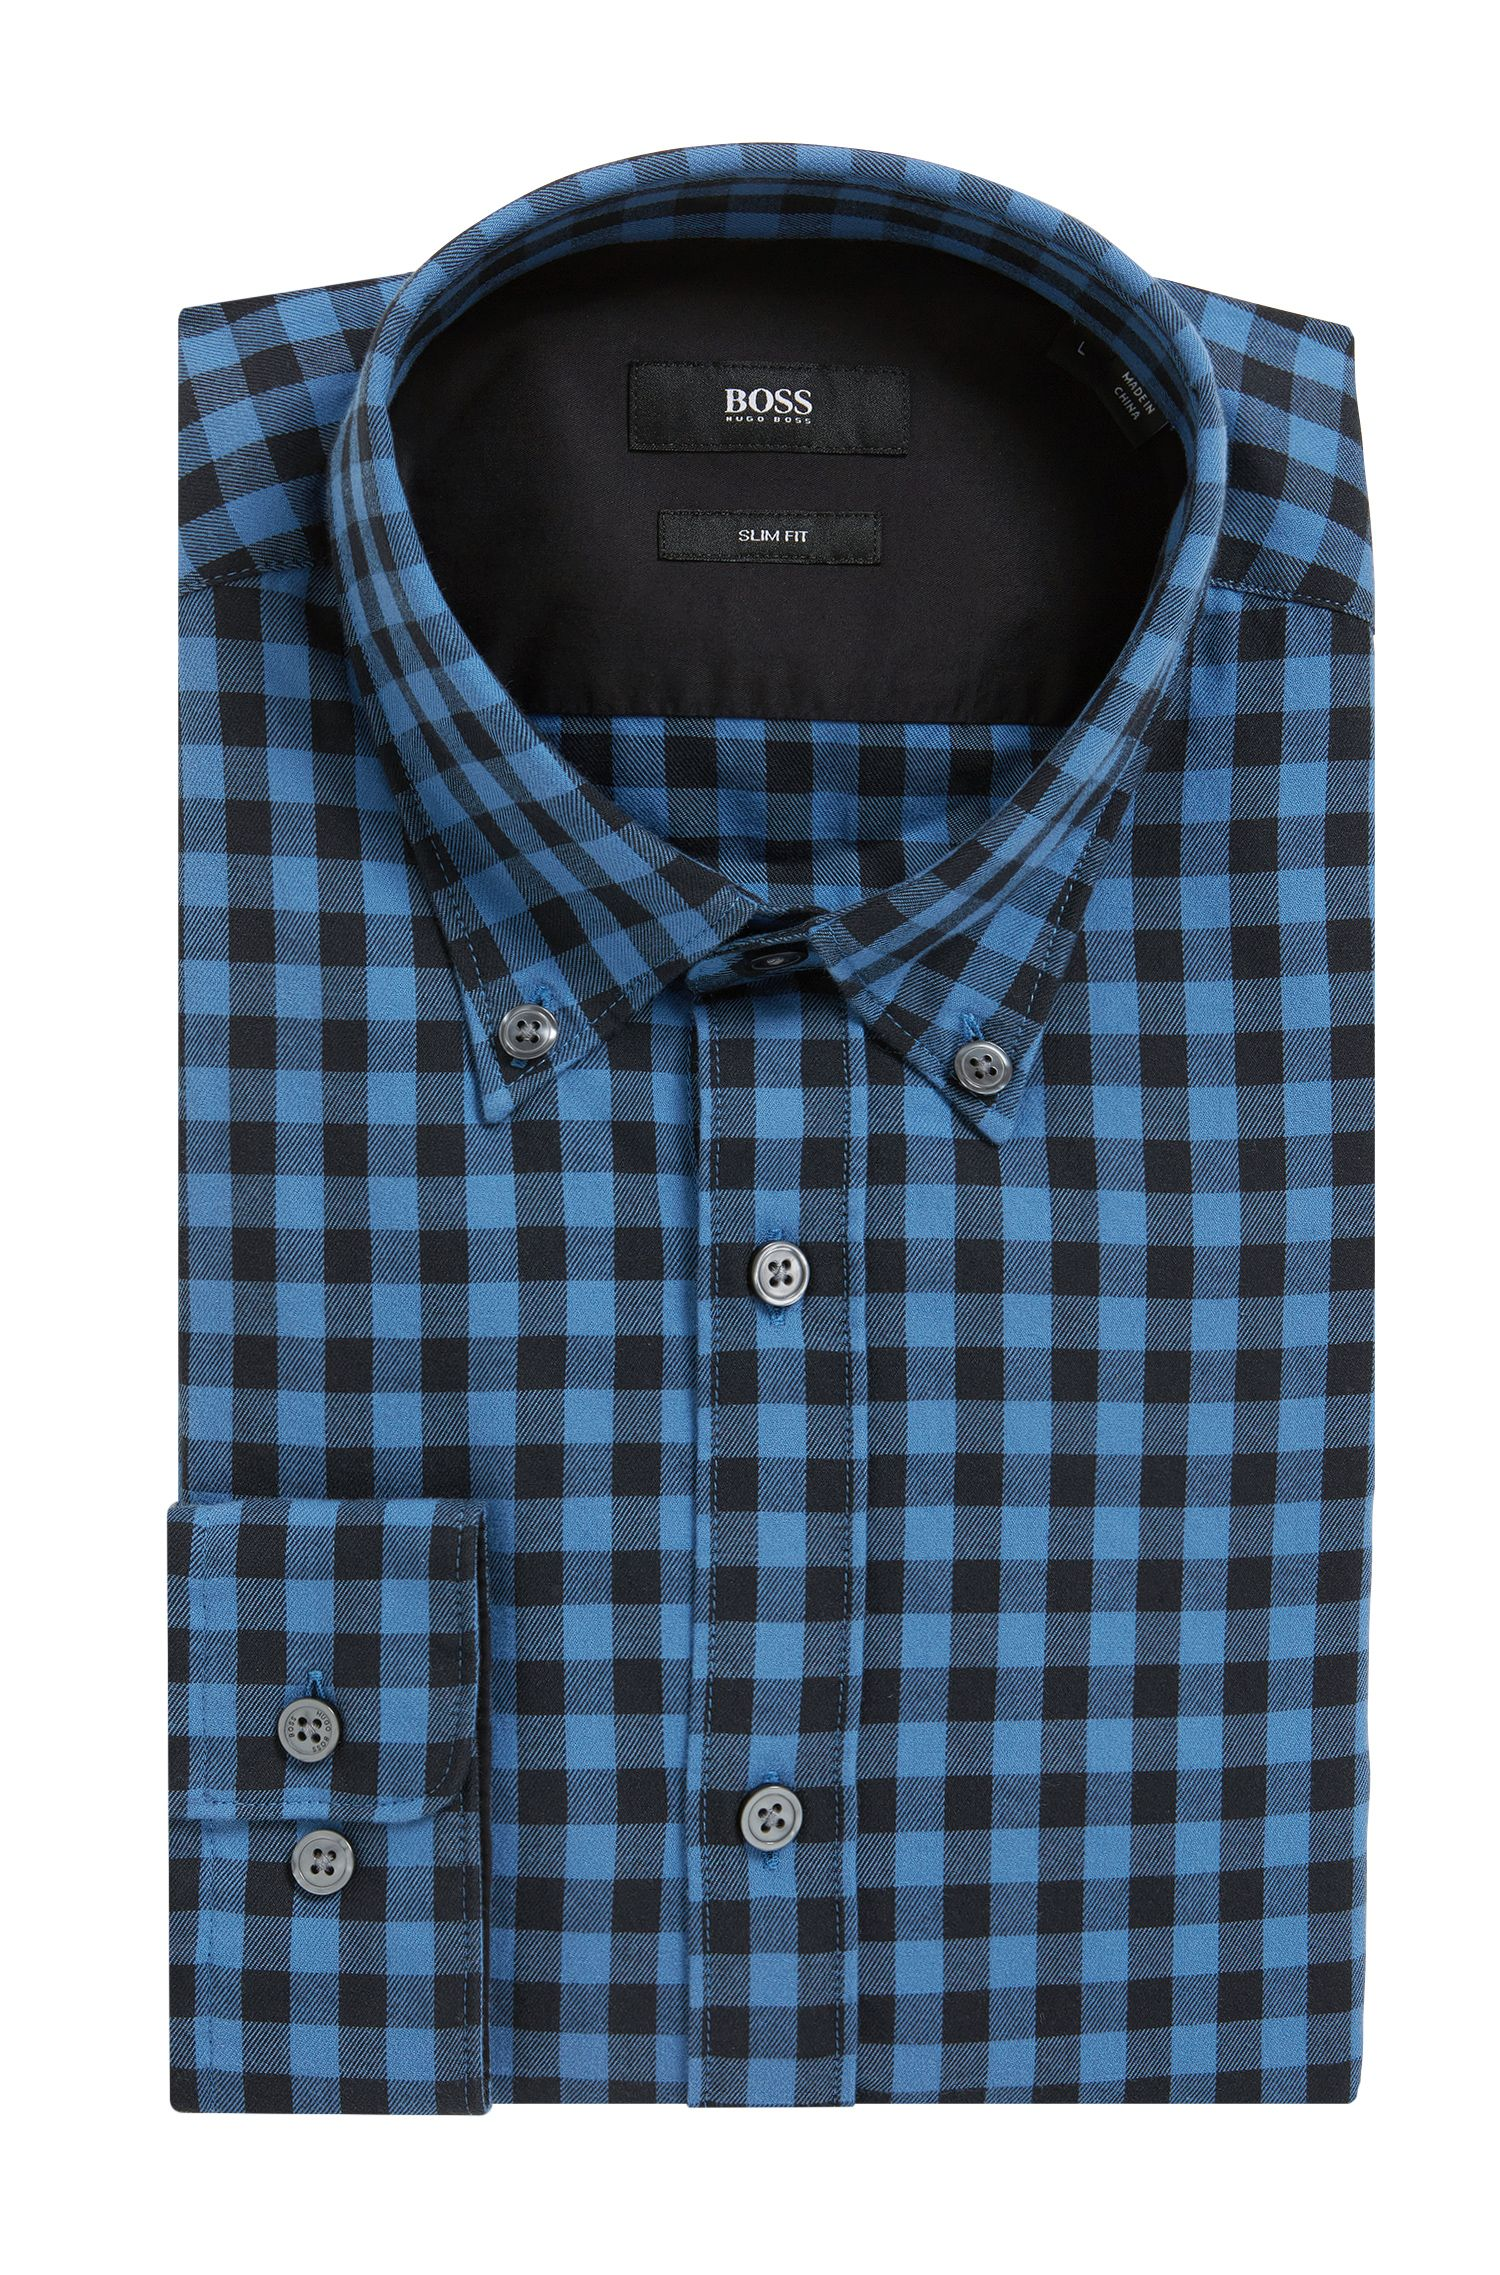 Gingham Cotton Button Down Shirt, Slim Fit | Rod